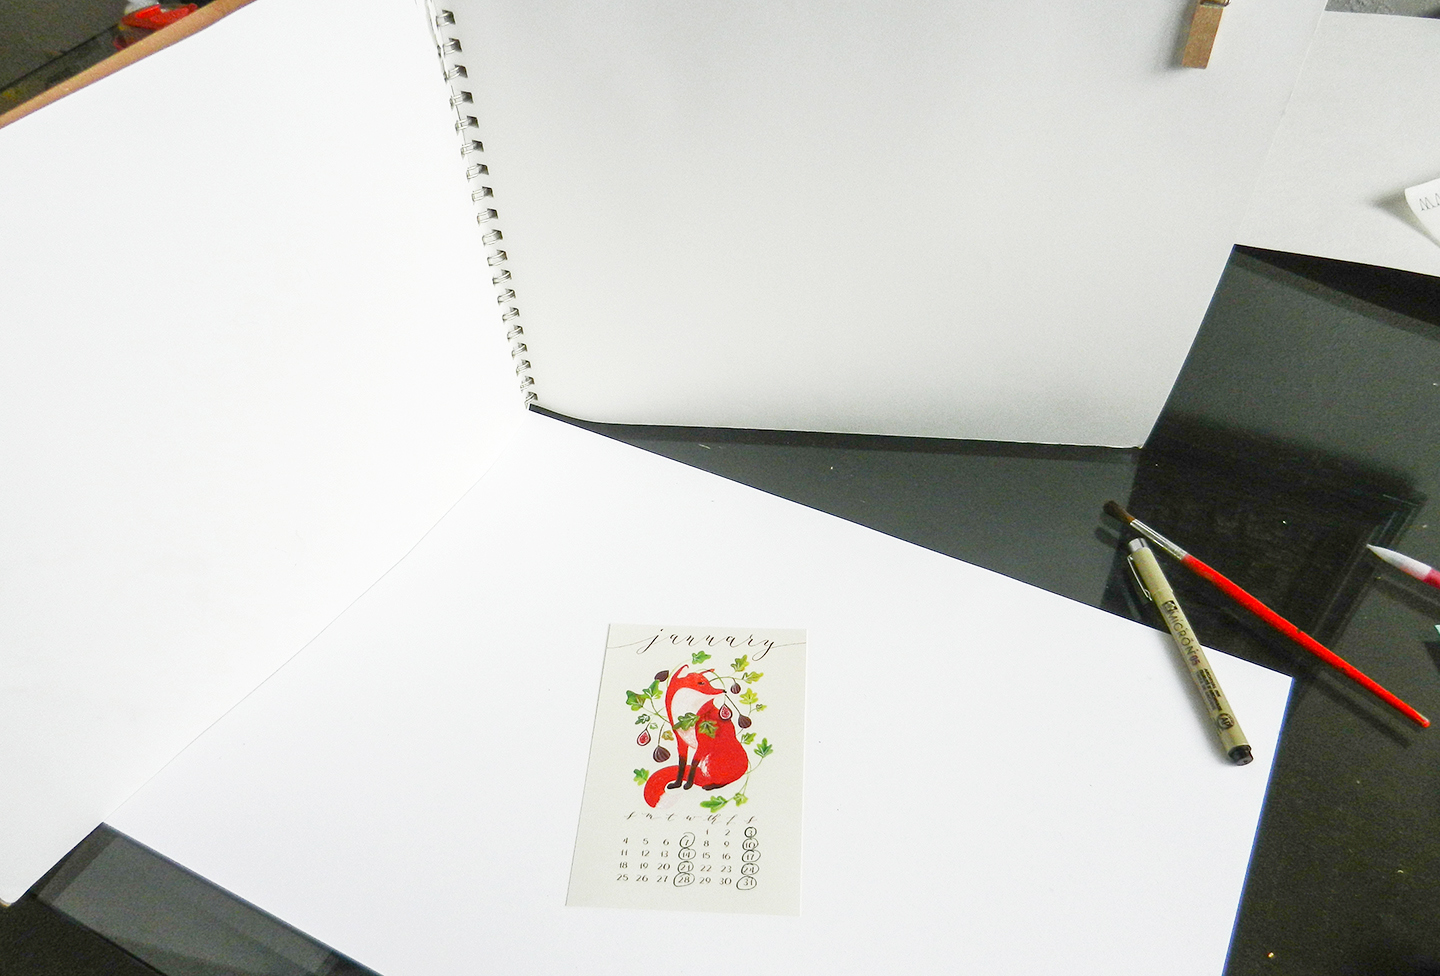 How to Write a Blog | The Postman's Knock